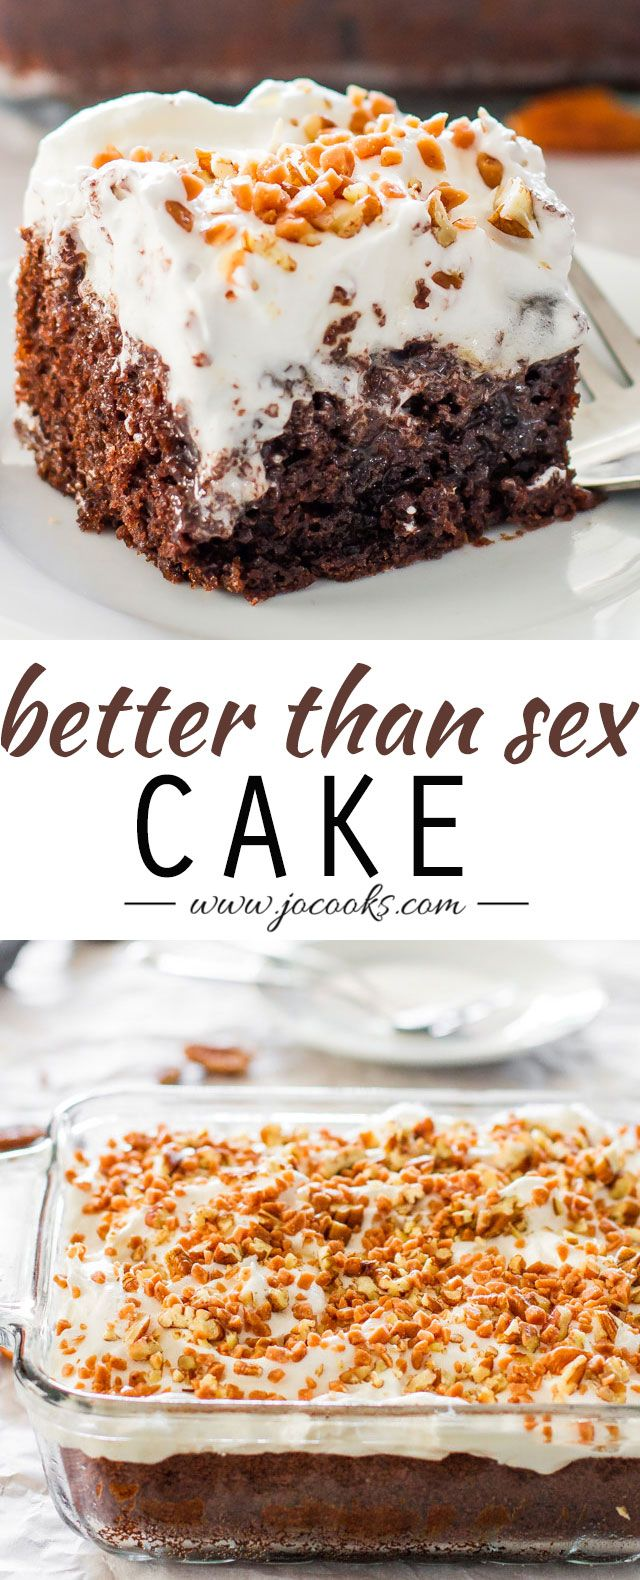 Better Than Sex Cake                                                                                                                                                                                 More